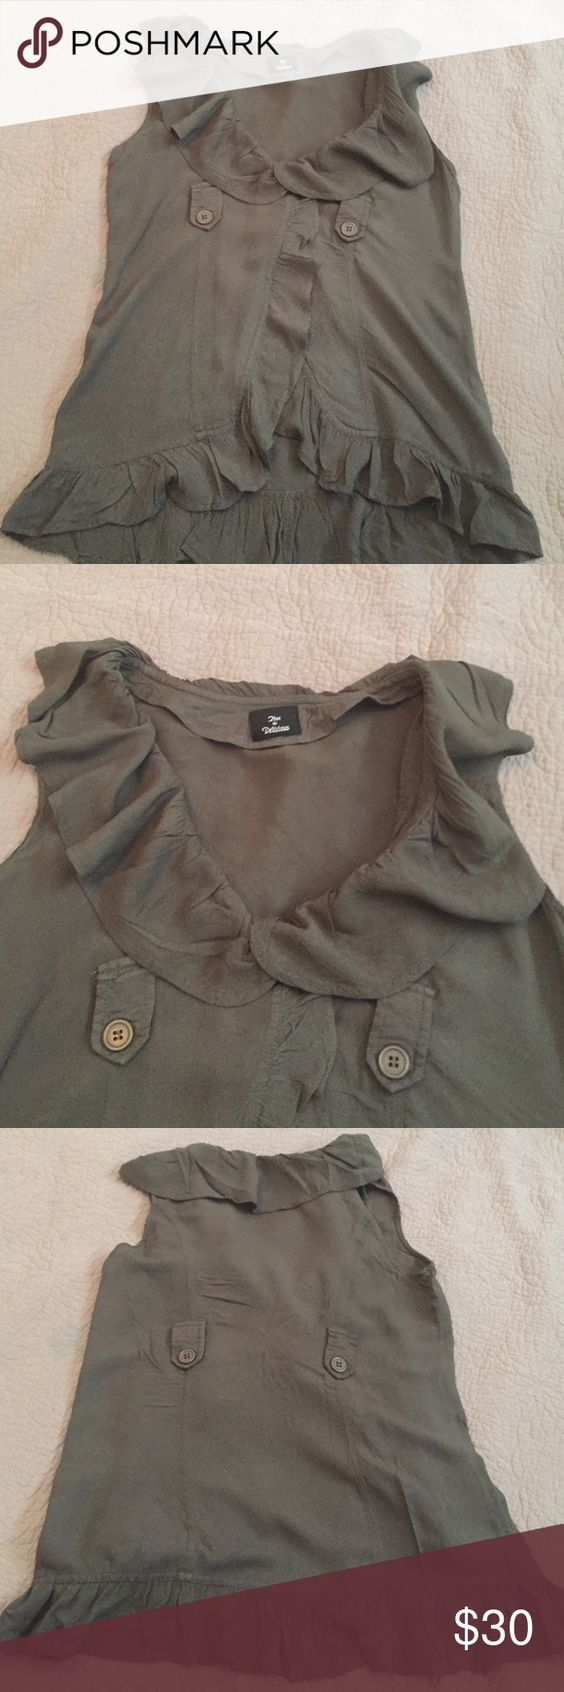 Hot &a delicious vest shirt Super cute and beautiful best shirt olive color, the measures from shoulder to bottom are 12 inches Hot & Delicious Tops